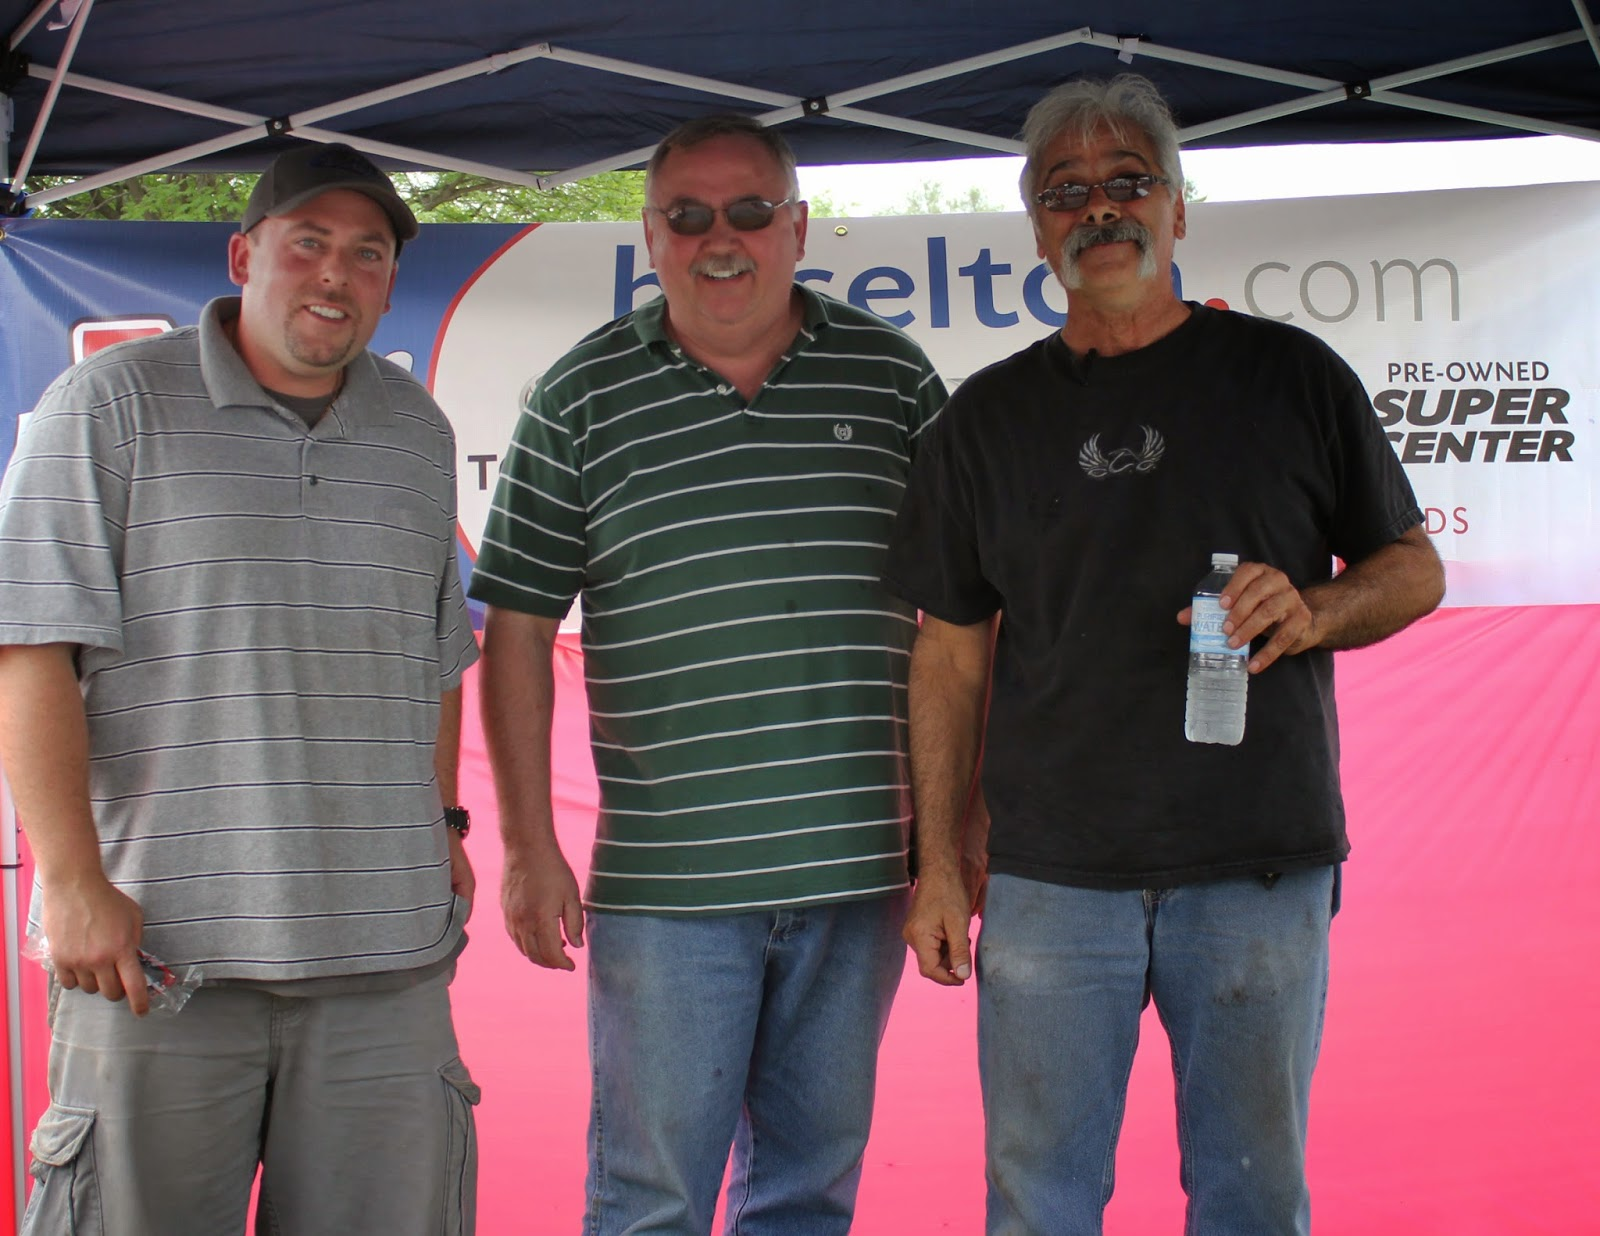 Hoselton Auto Mall Employees at Sundae Fun Day!